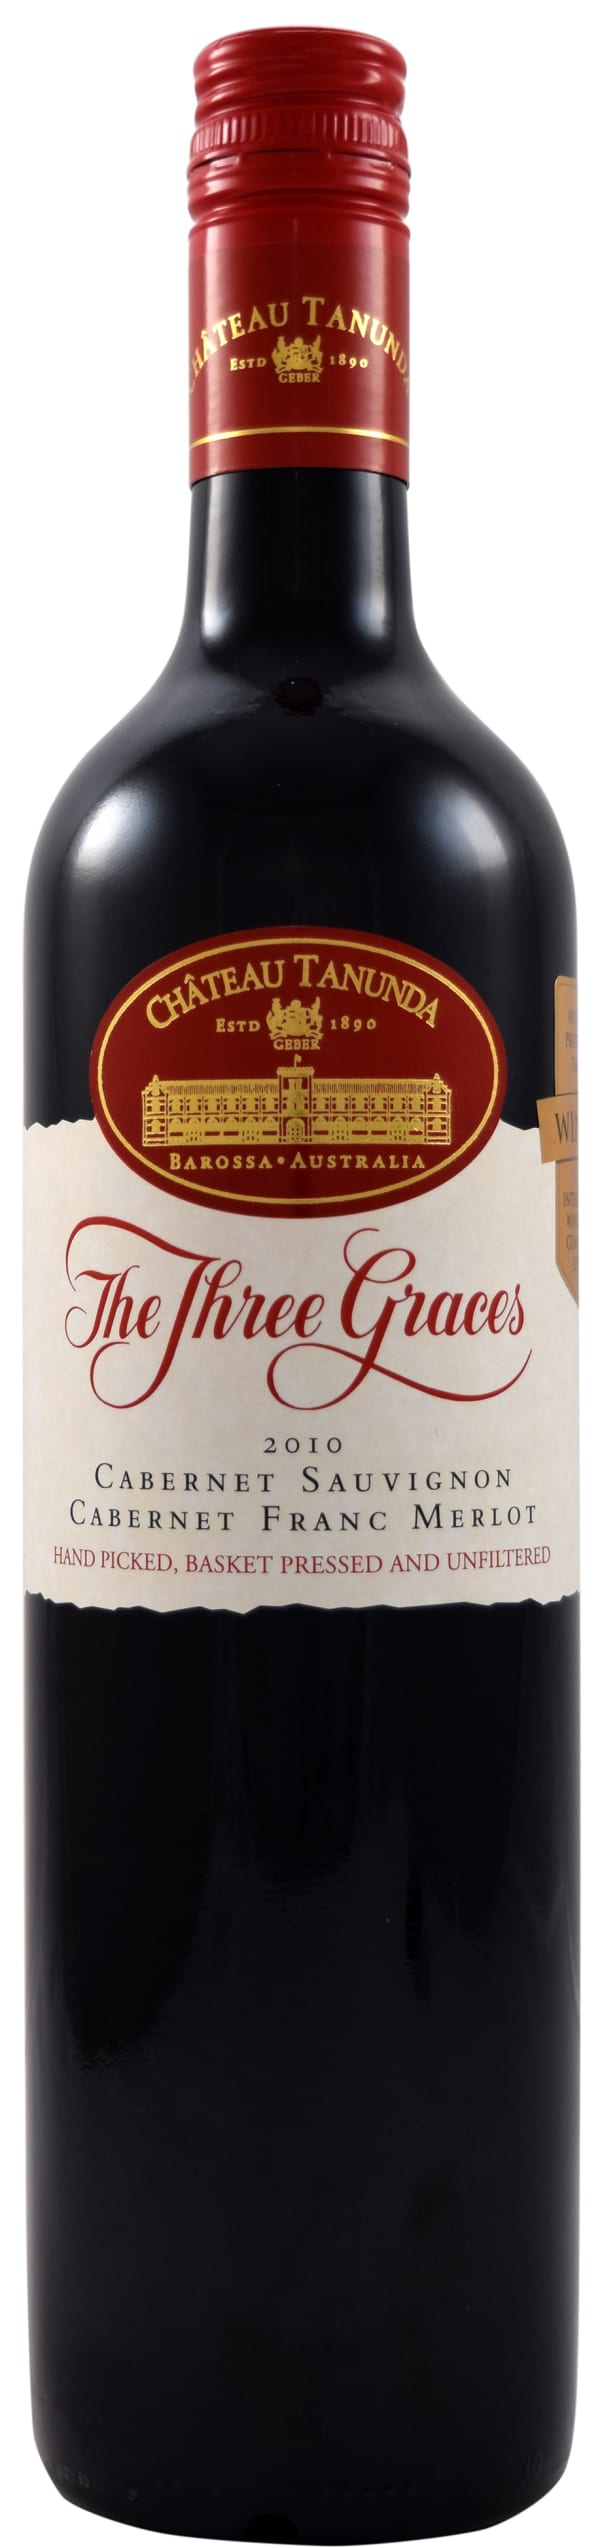 The Three Graces Cabernet Sauvignon Cabernet Franc Merlot 2010